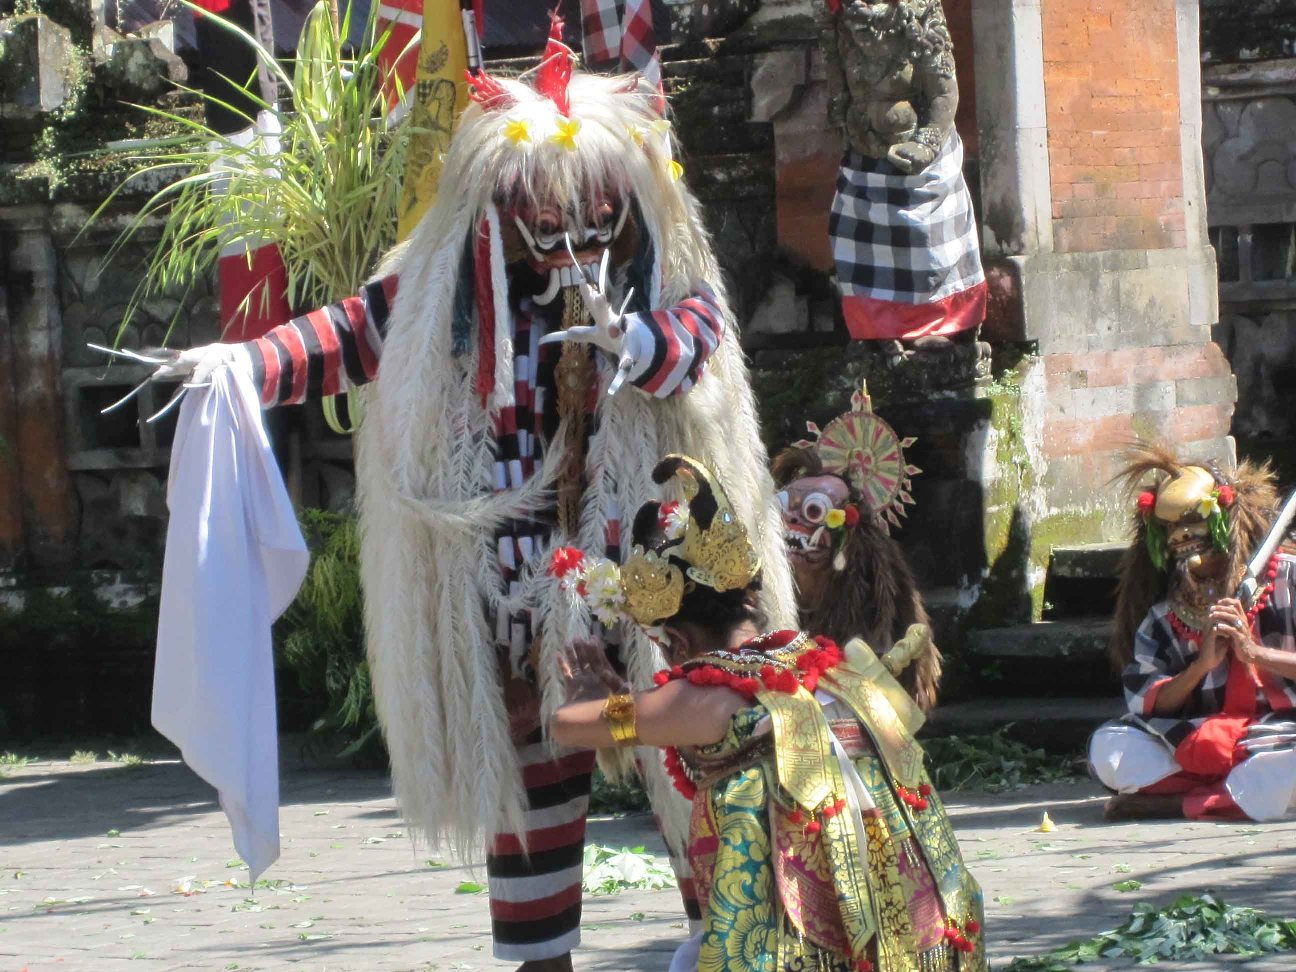 Balinese Masks in Temples, Performances, and Tourist Shops